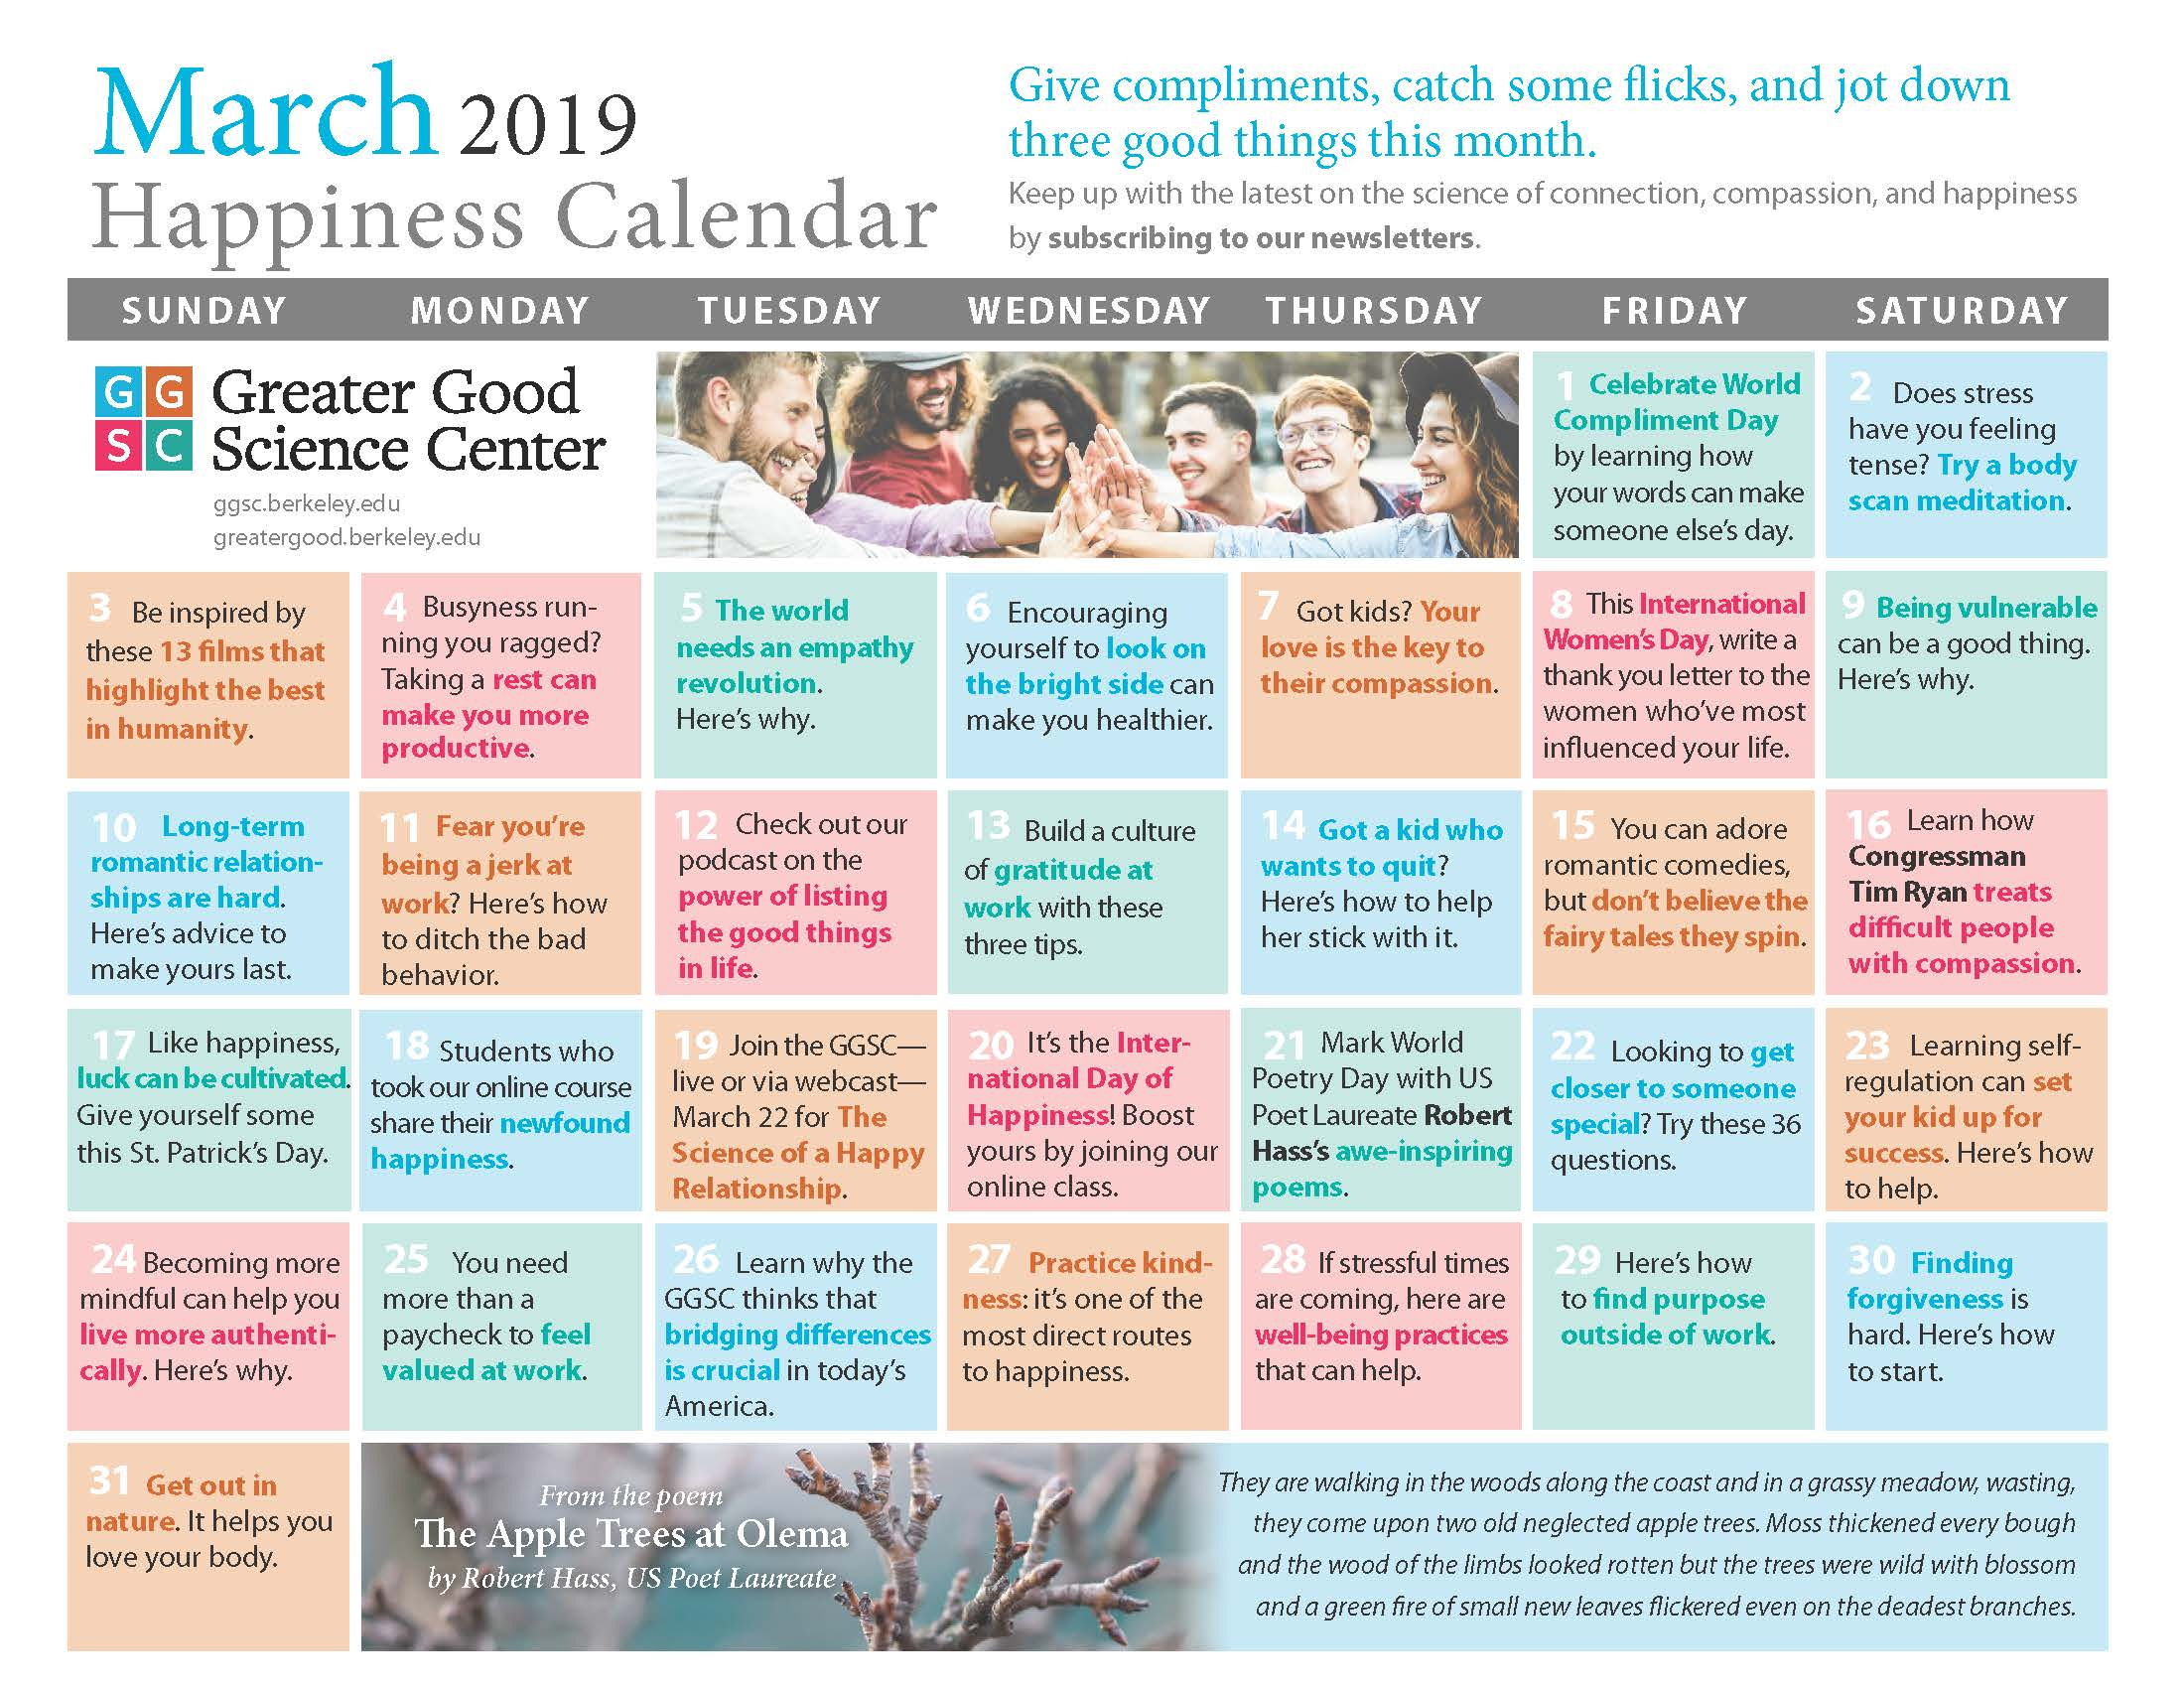 Your Happiness Calendar For March 2019 pertaining to Ucb Calendar 2020